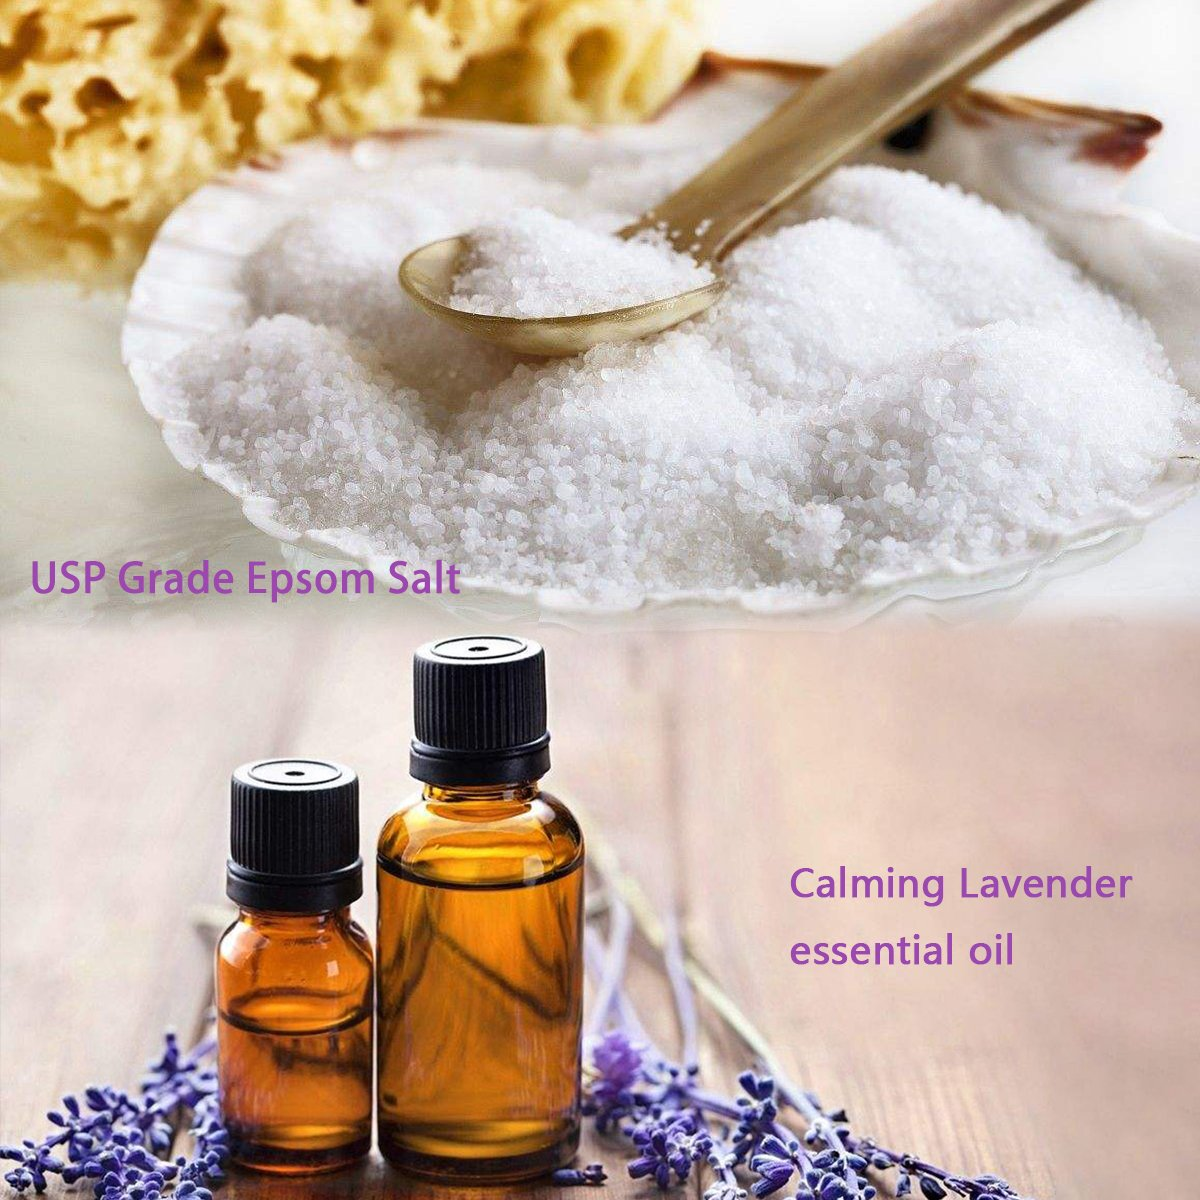 Spa Luxetique Premium Epsom Salt for Foot Soak, 2 lbs Magnesium Sulfate USP Bath Salt Formula, Sleep Well with Calming Lavender Essential Oil by spa luxetique (Image #3)